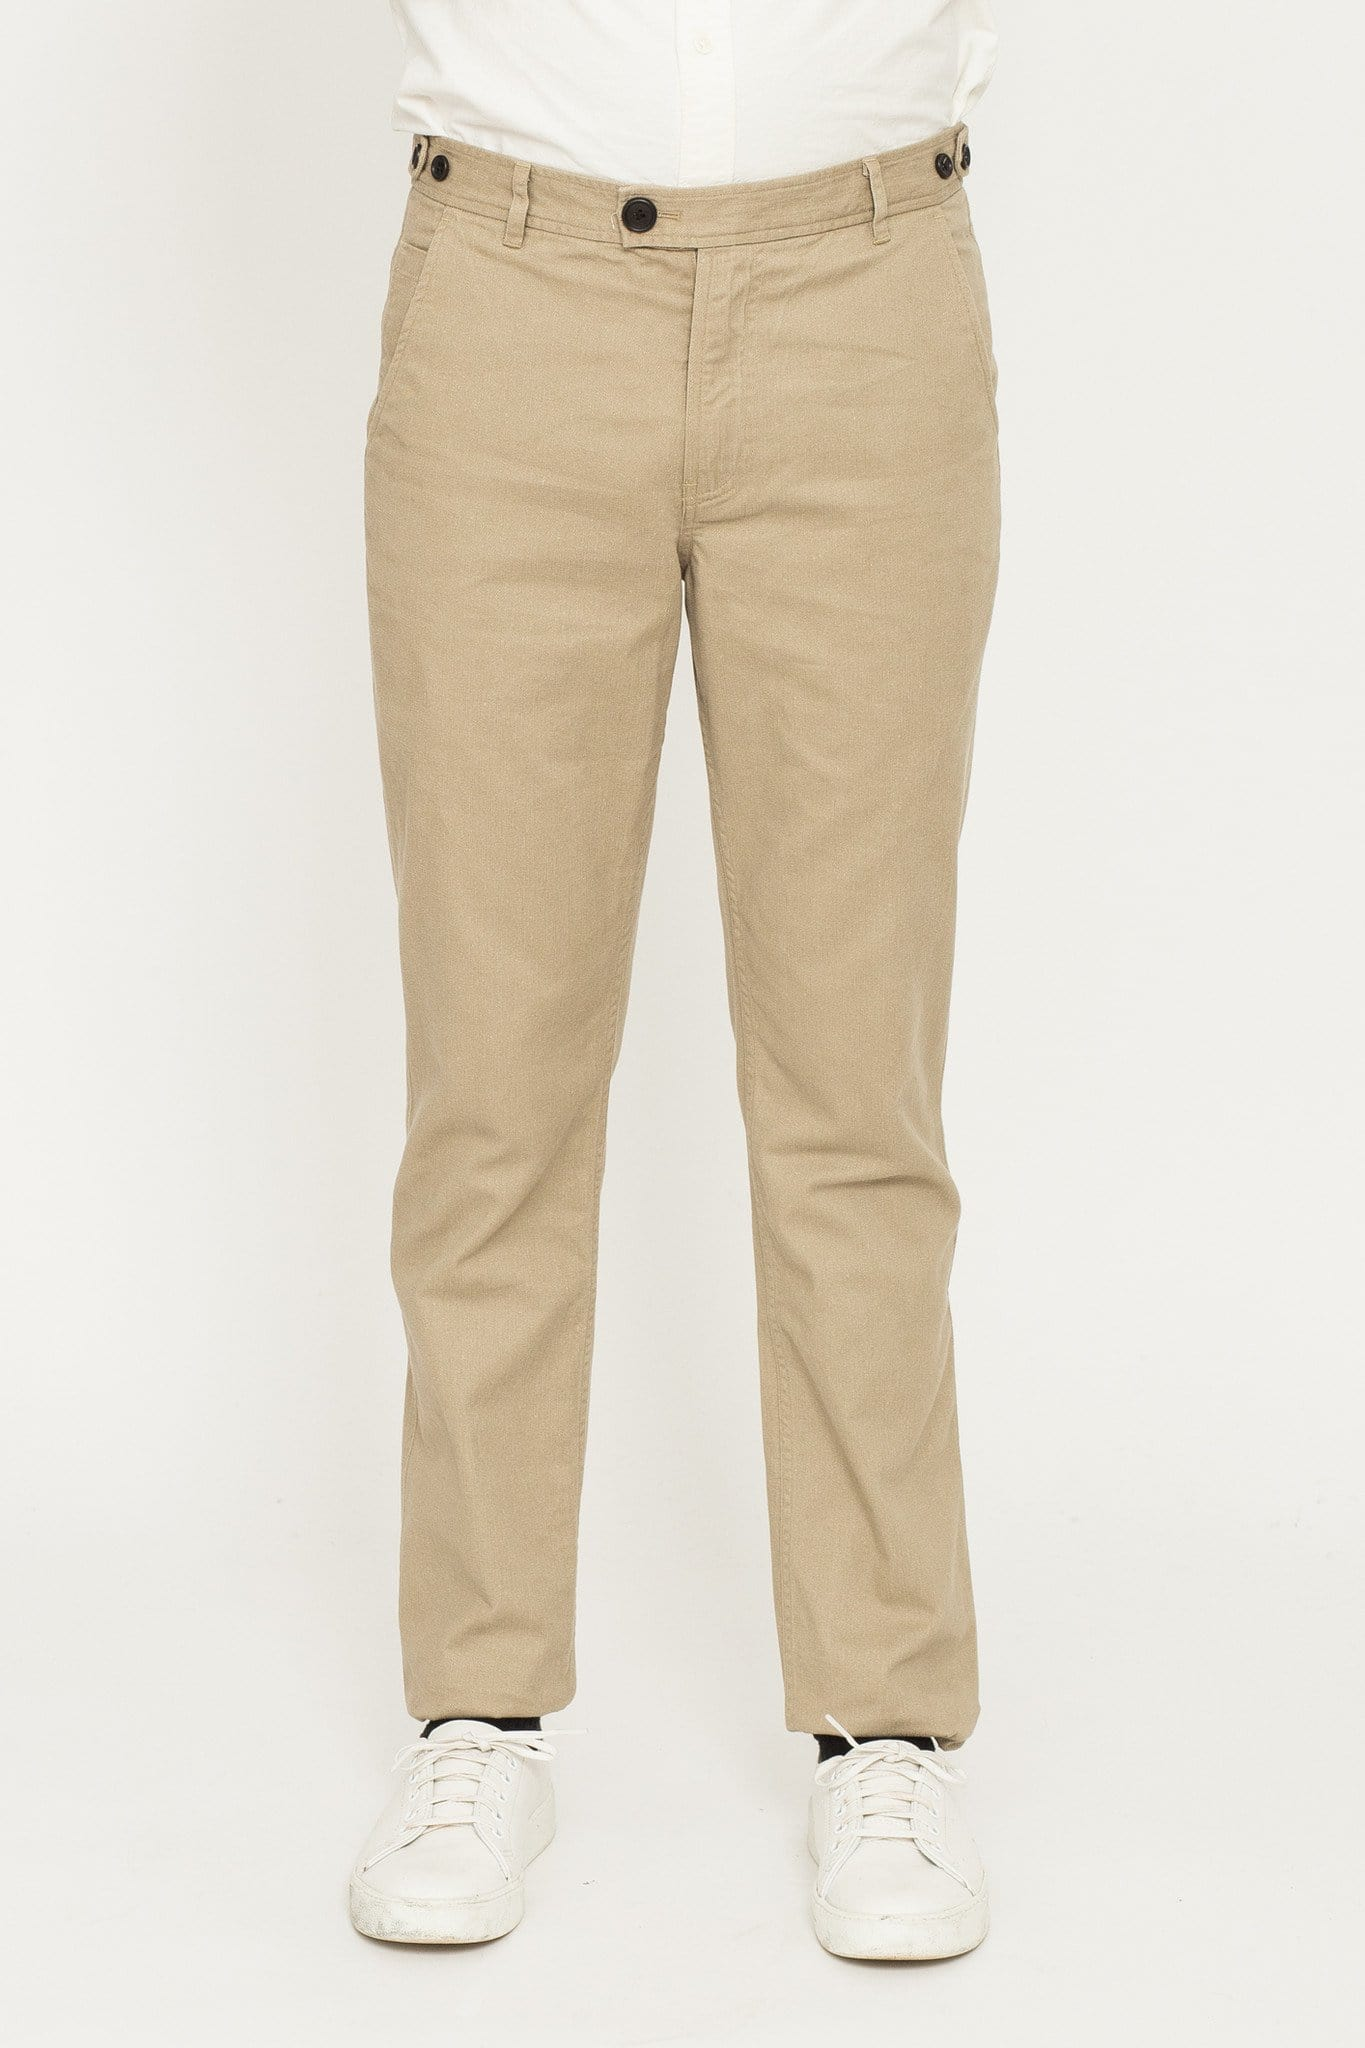 Brushed Twill Chino - Khaki